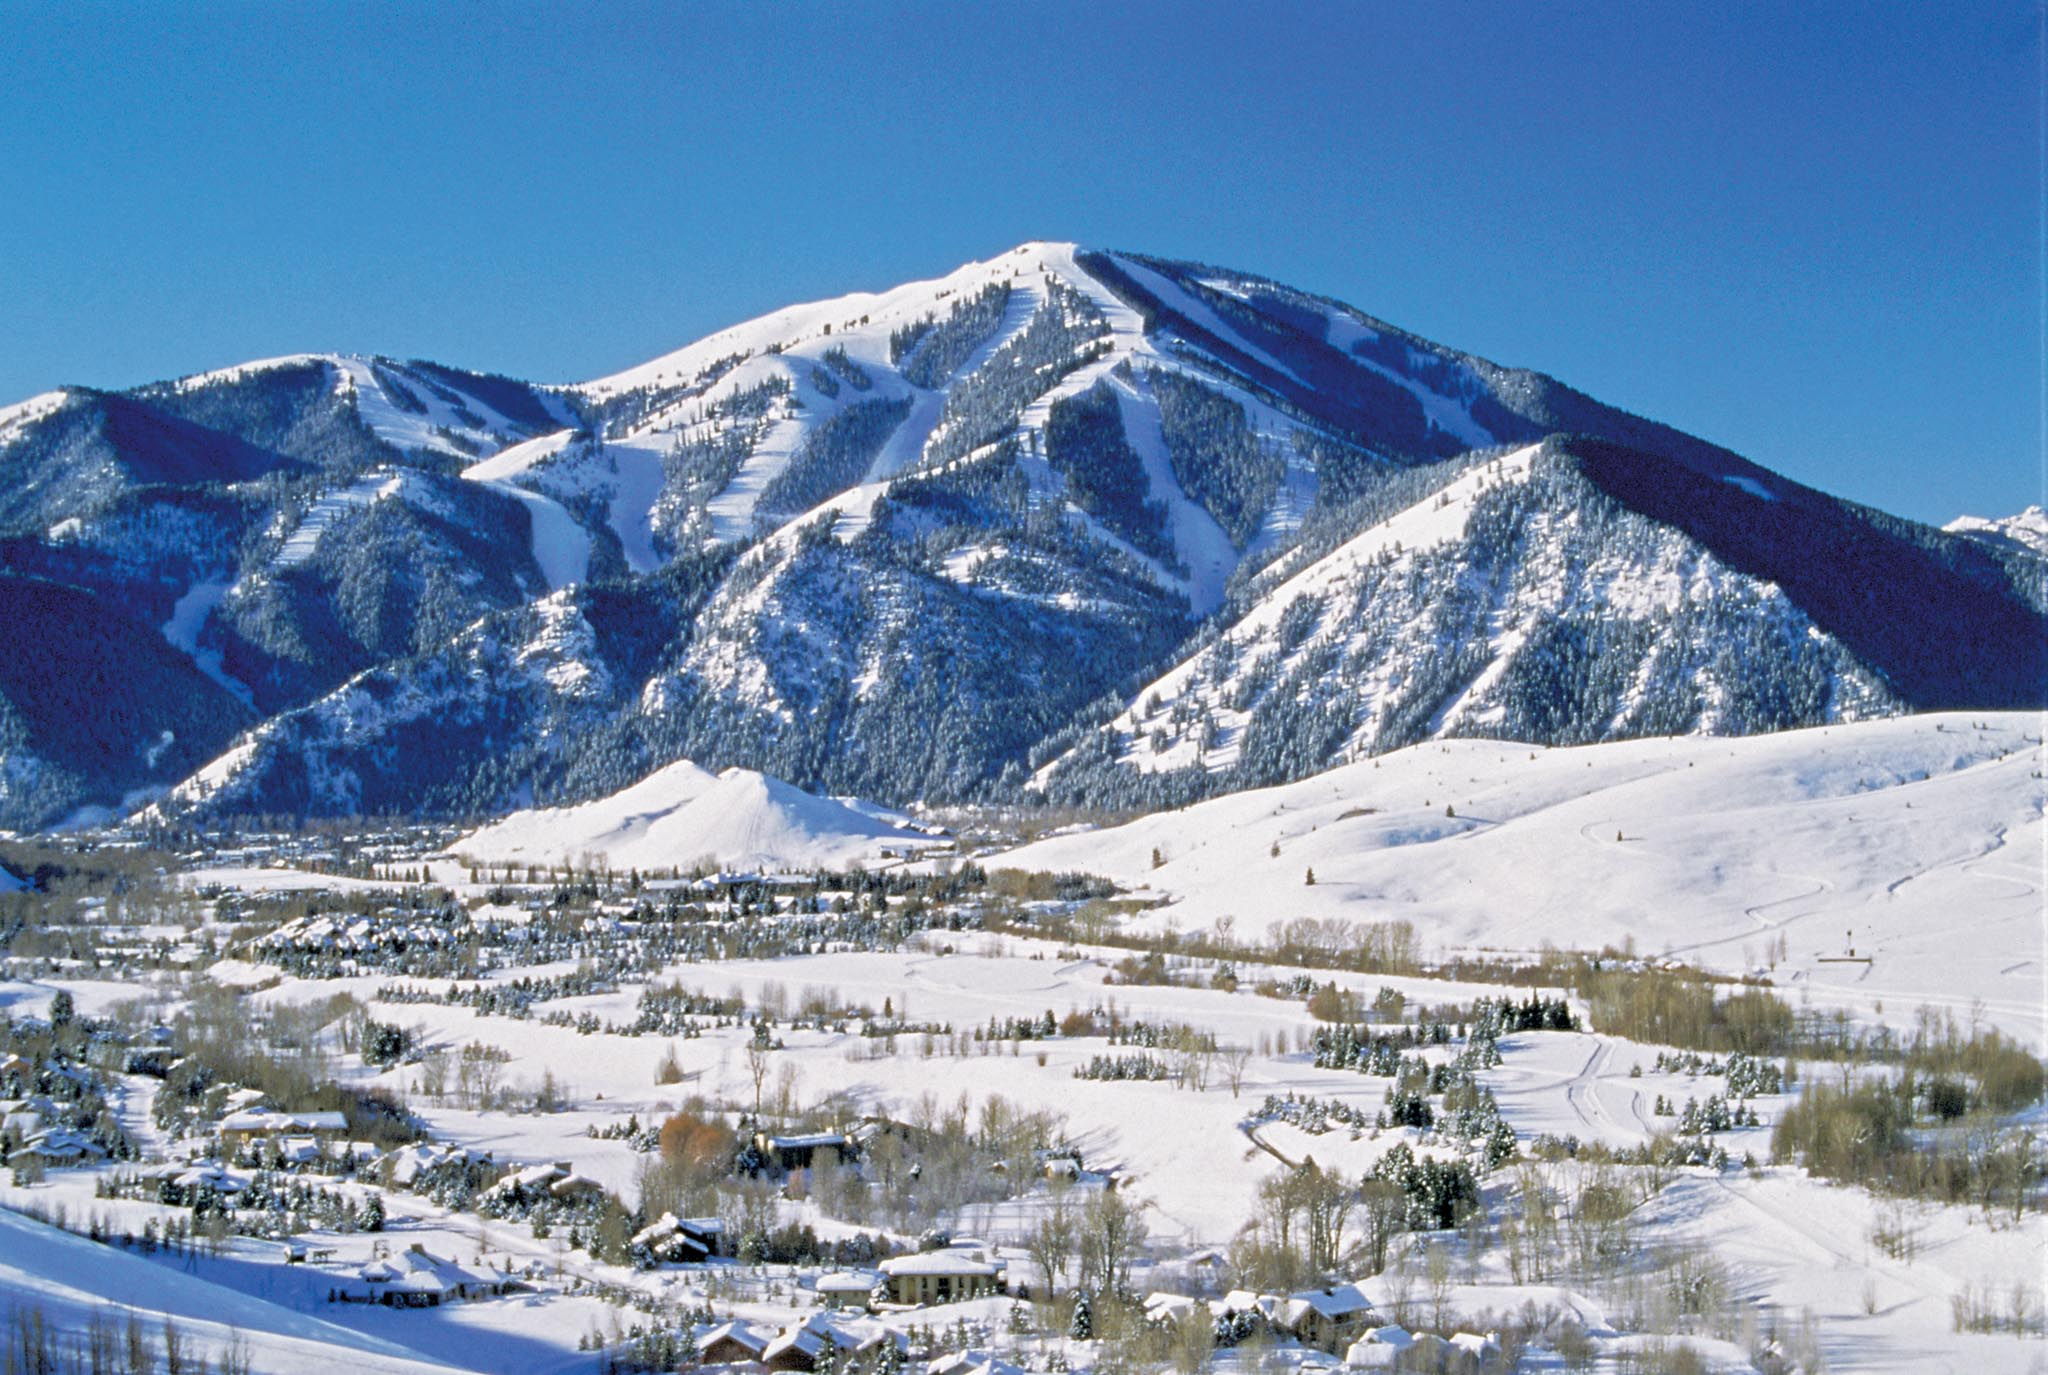 Bald Mountain, Sun Valley